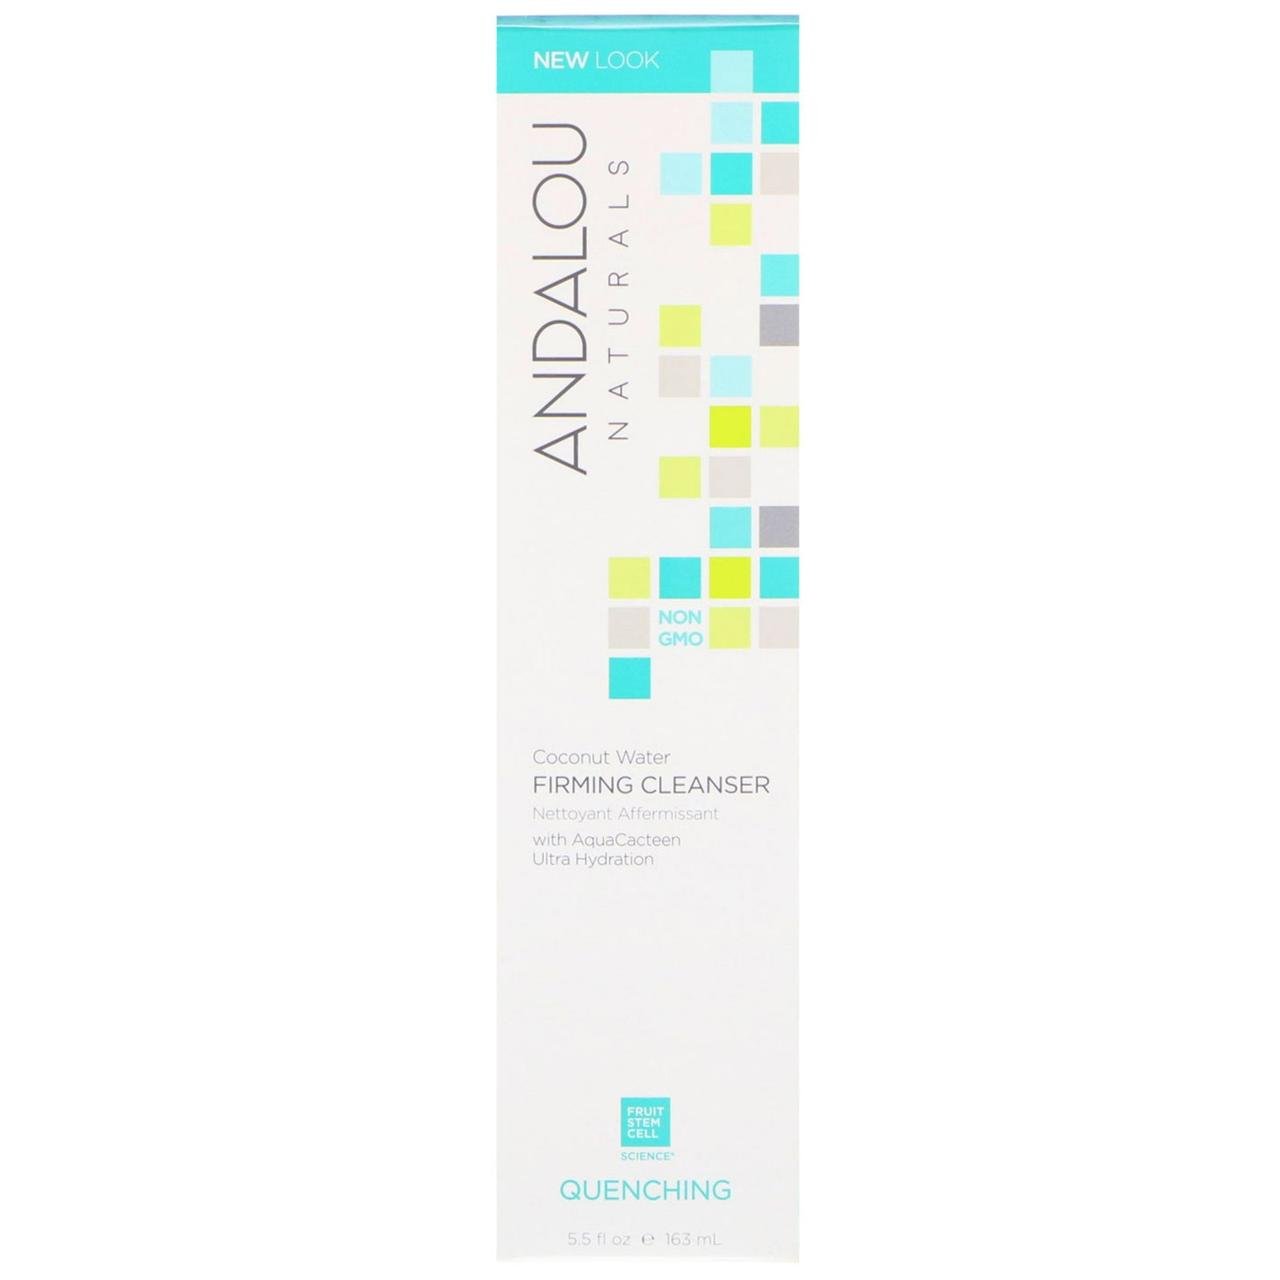 Andalou Naturals, Coconut Water Firming Cleanser, Quenching, 5.5 fl oz (163 ml)